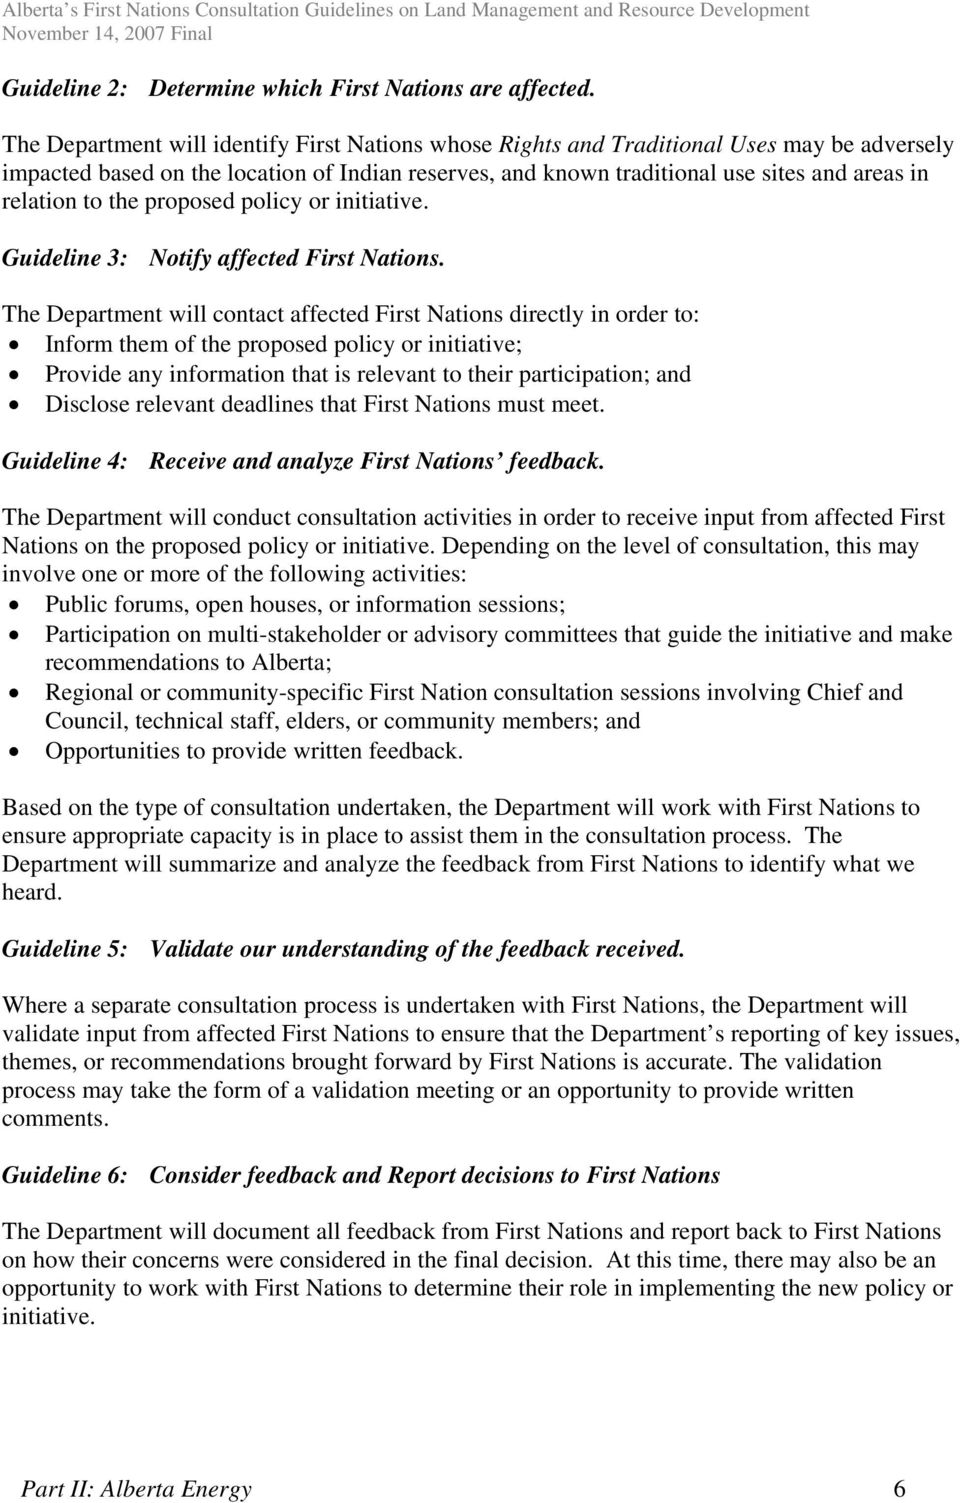 to the proposed policy or initiative. Guideline 3: Notify affected First Nations.